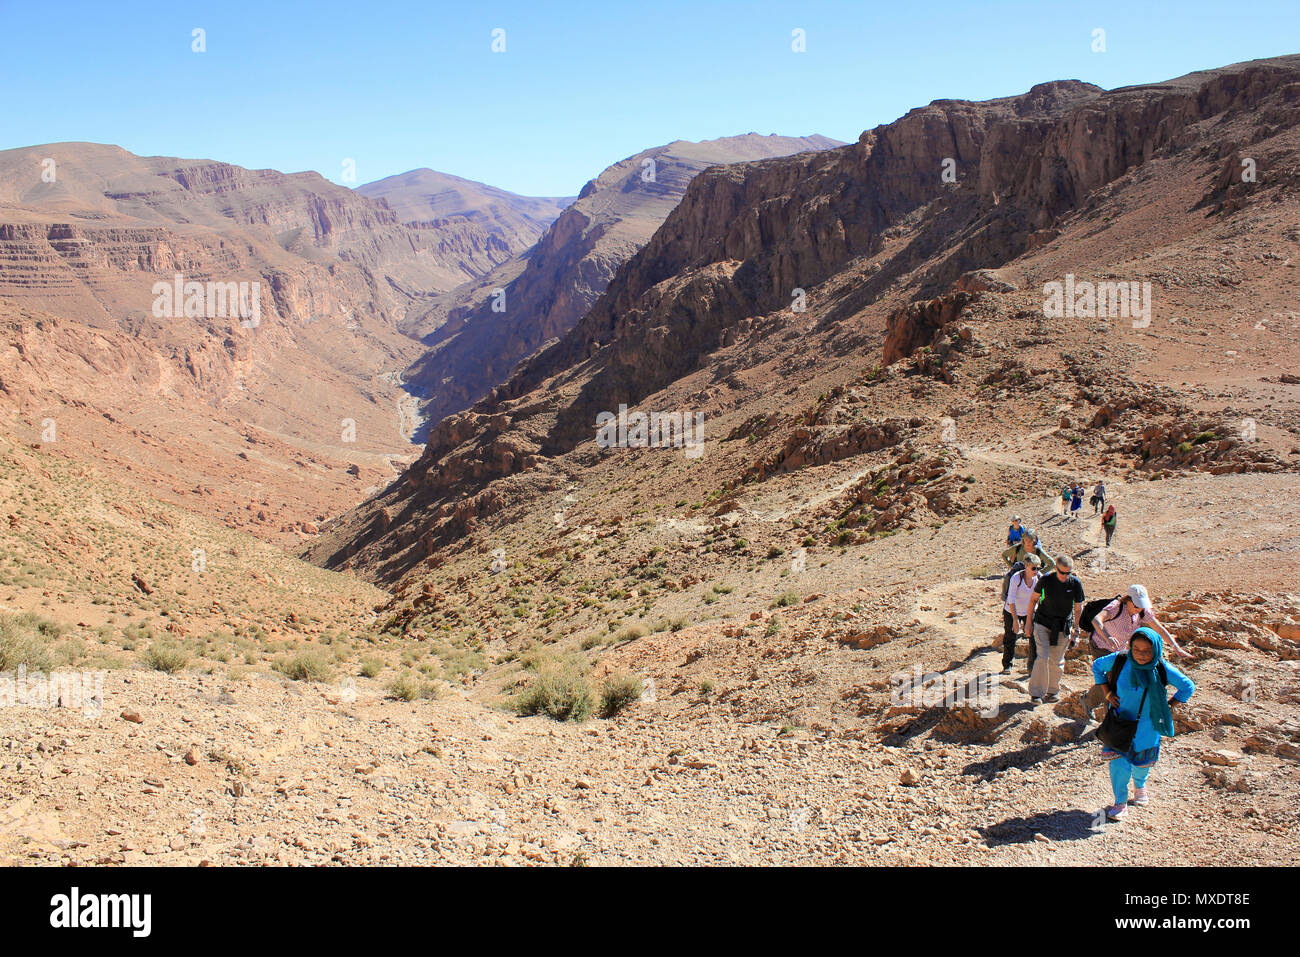 Hiking In Todra Valley Morocco - Stock Image